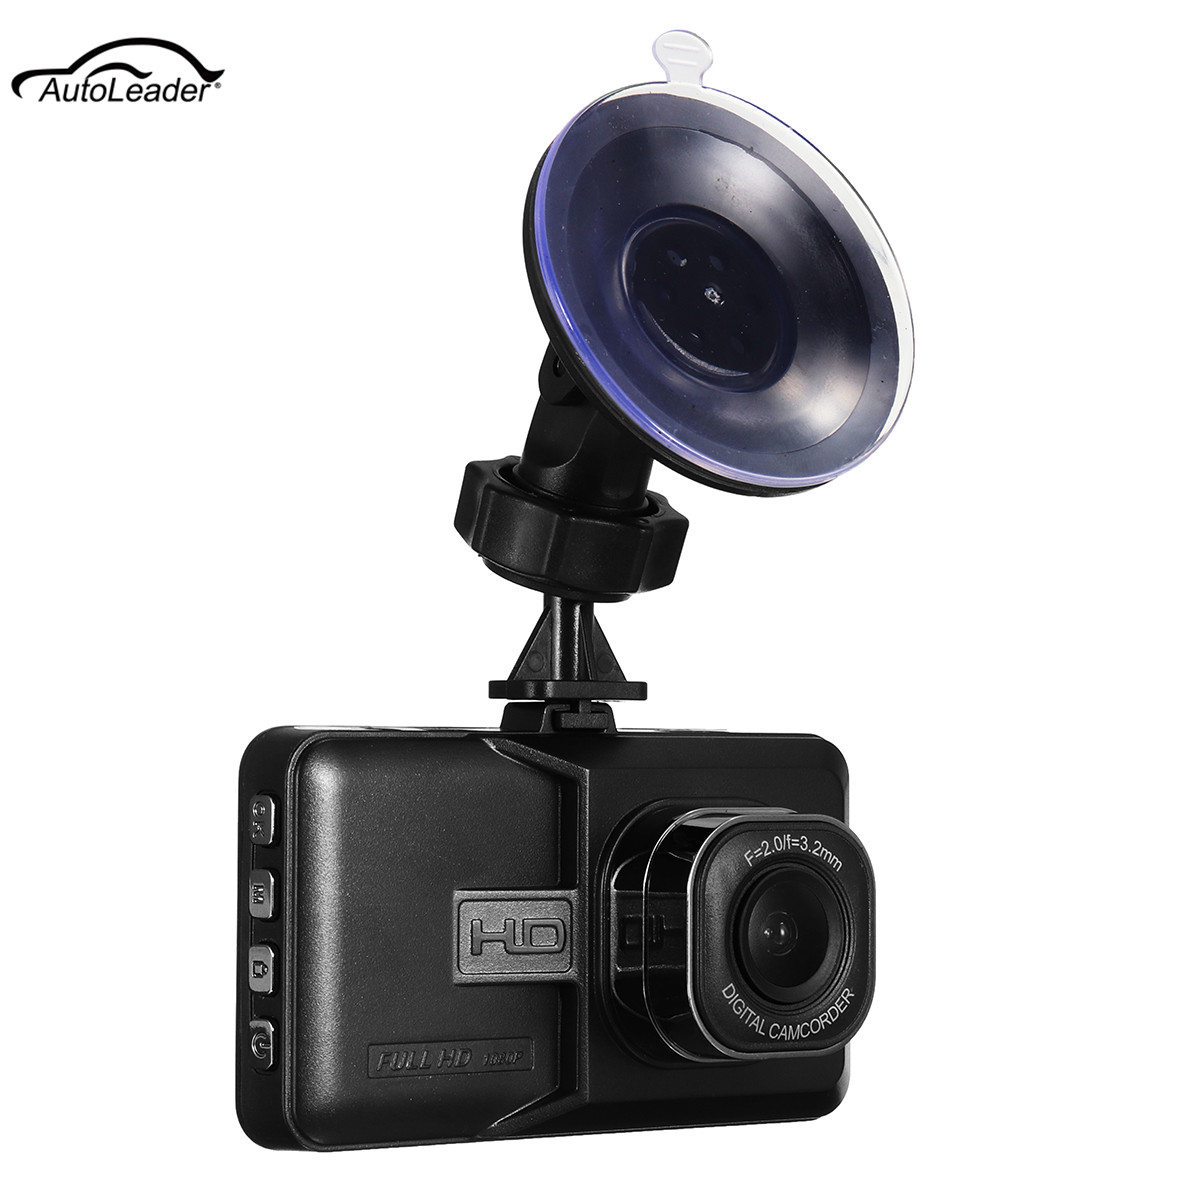 Autoleader Car Dash Cams 1080P HD Car Vehicle DVR Camcorder Action Video Camera 120 Degree Wide Angle For Cars Night Vision